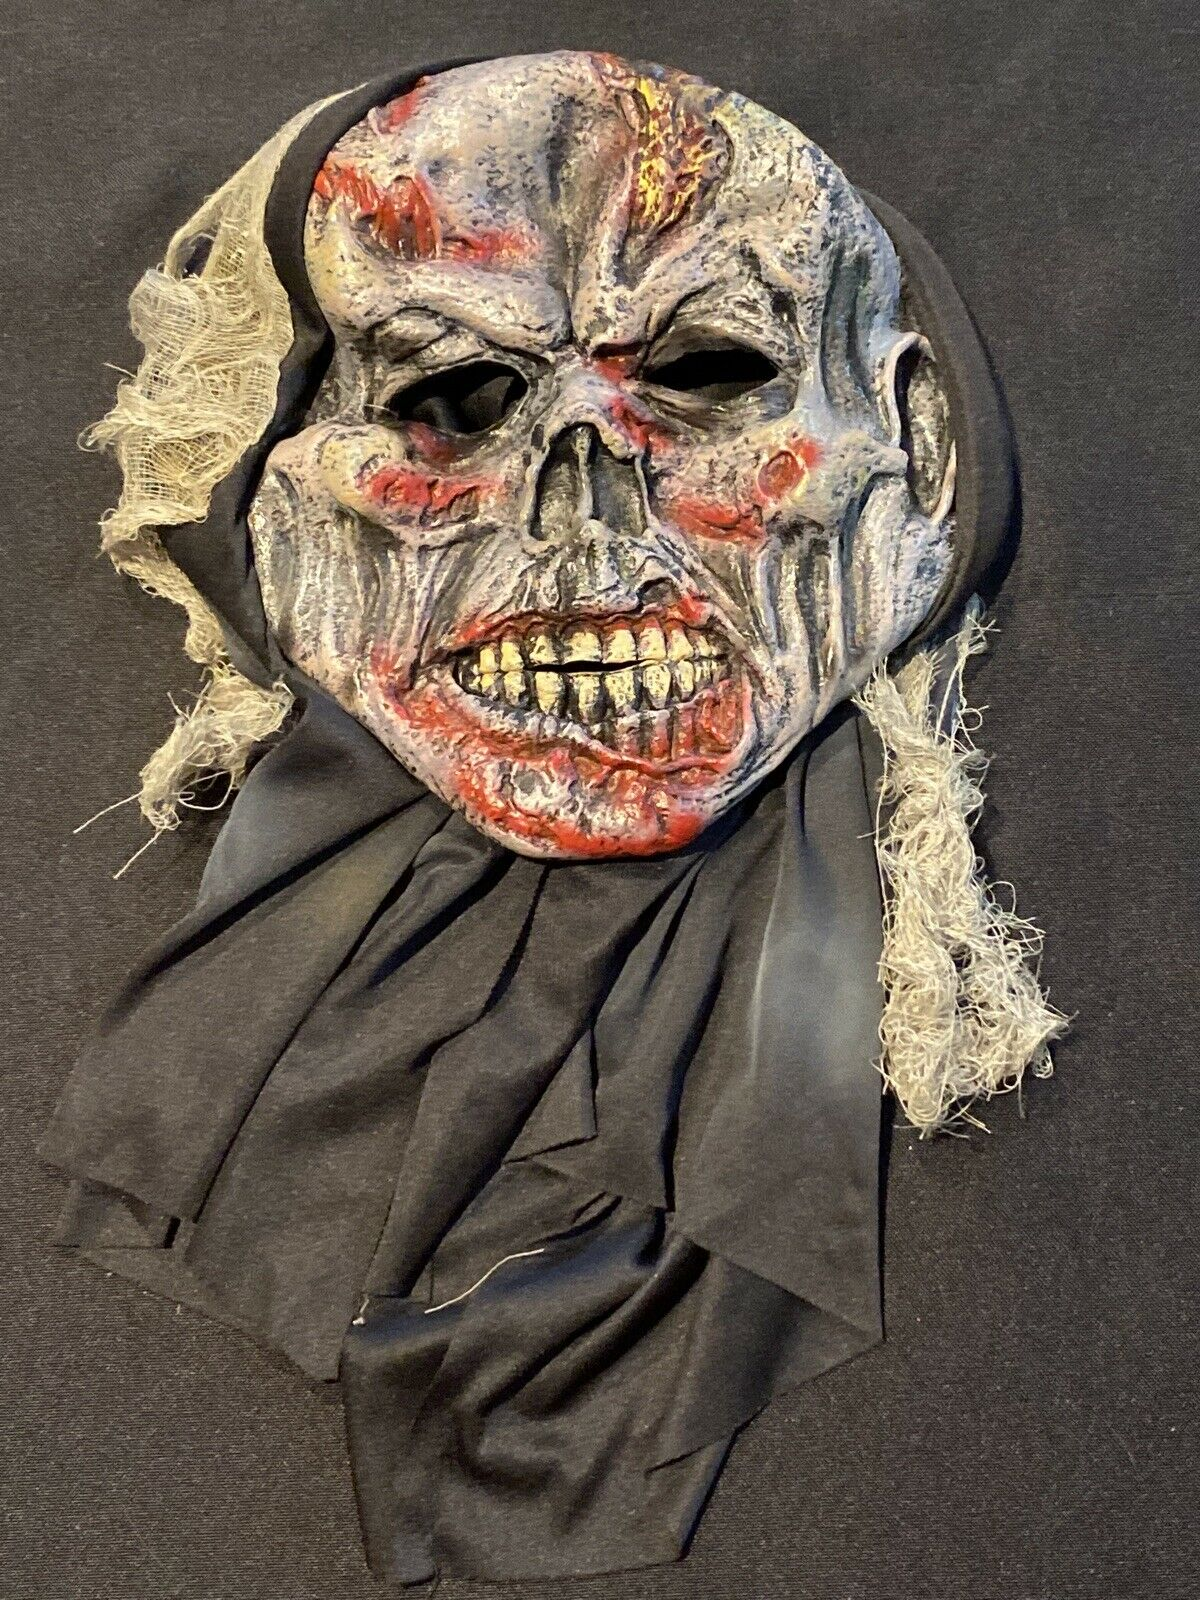 This quick history lesson will help you understand how this festive holiday began. Bloody Zombie Ghoul Creepy Mask Adult Scary Halloween Gem